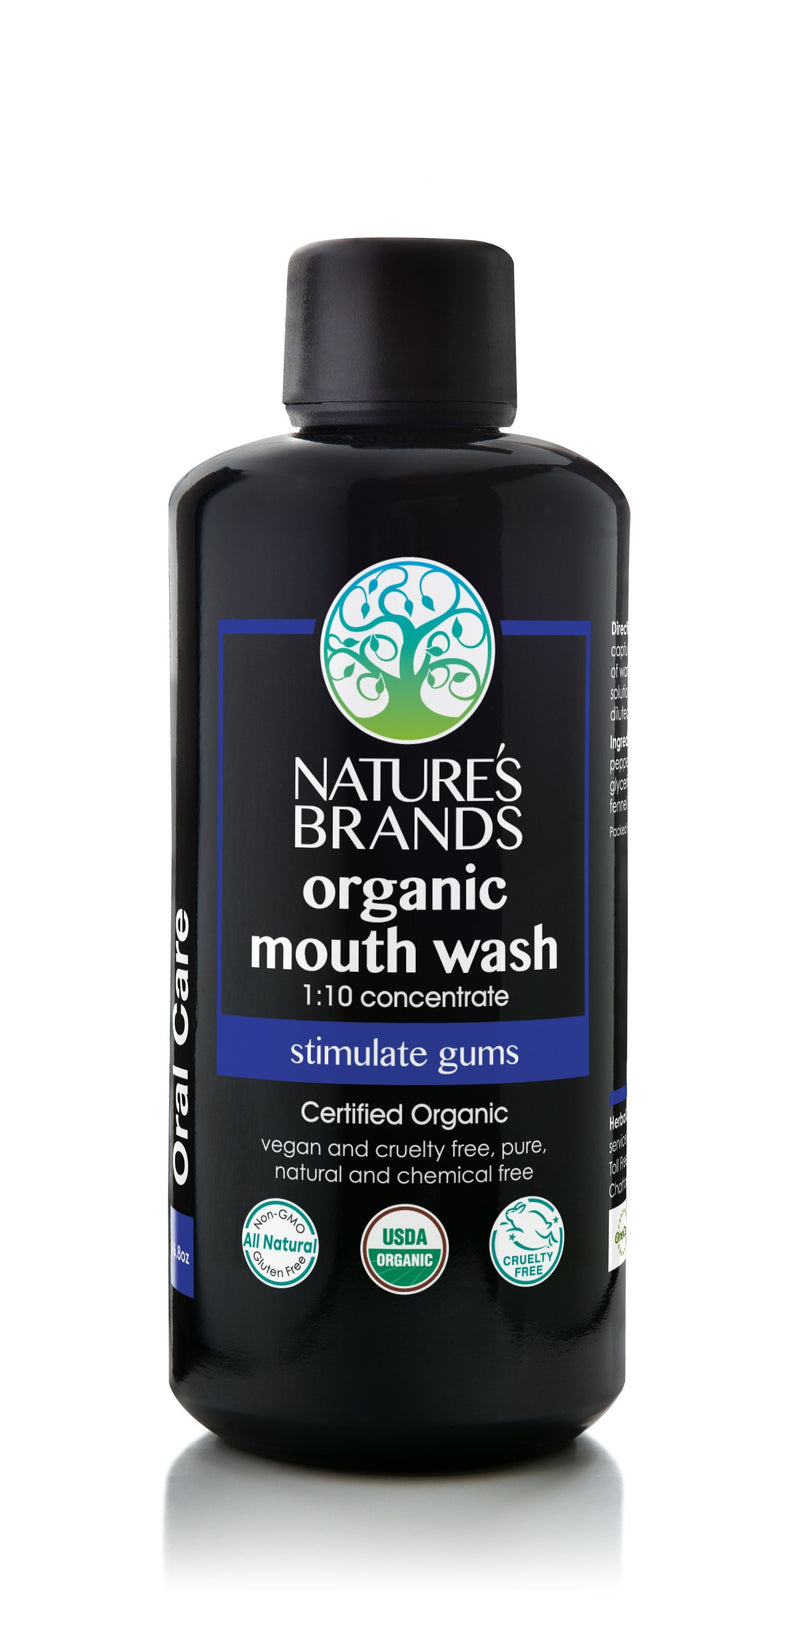 Organic Mouth Wash 1:10 Concentrate - Organic Mouth Wash 1:10 Concentrate - Full Size (200ml/6.8oz)